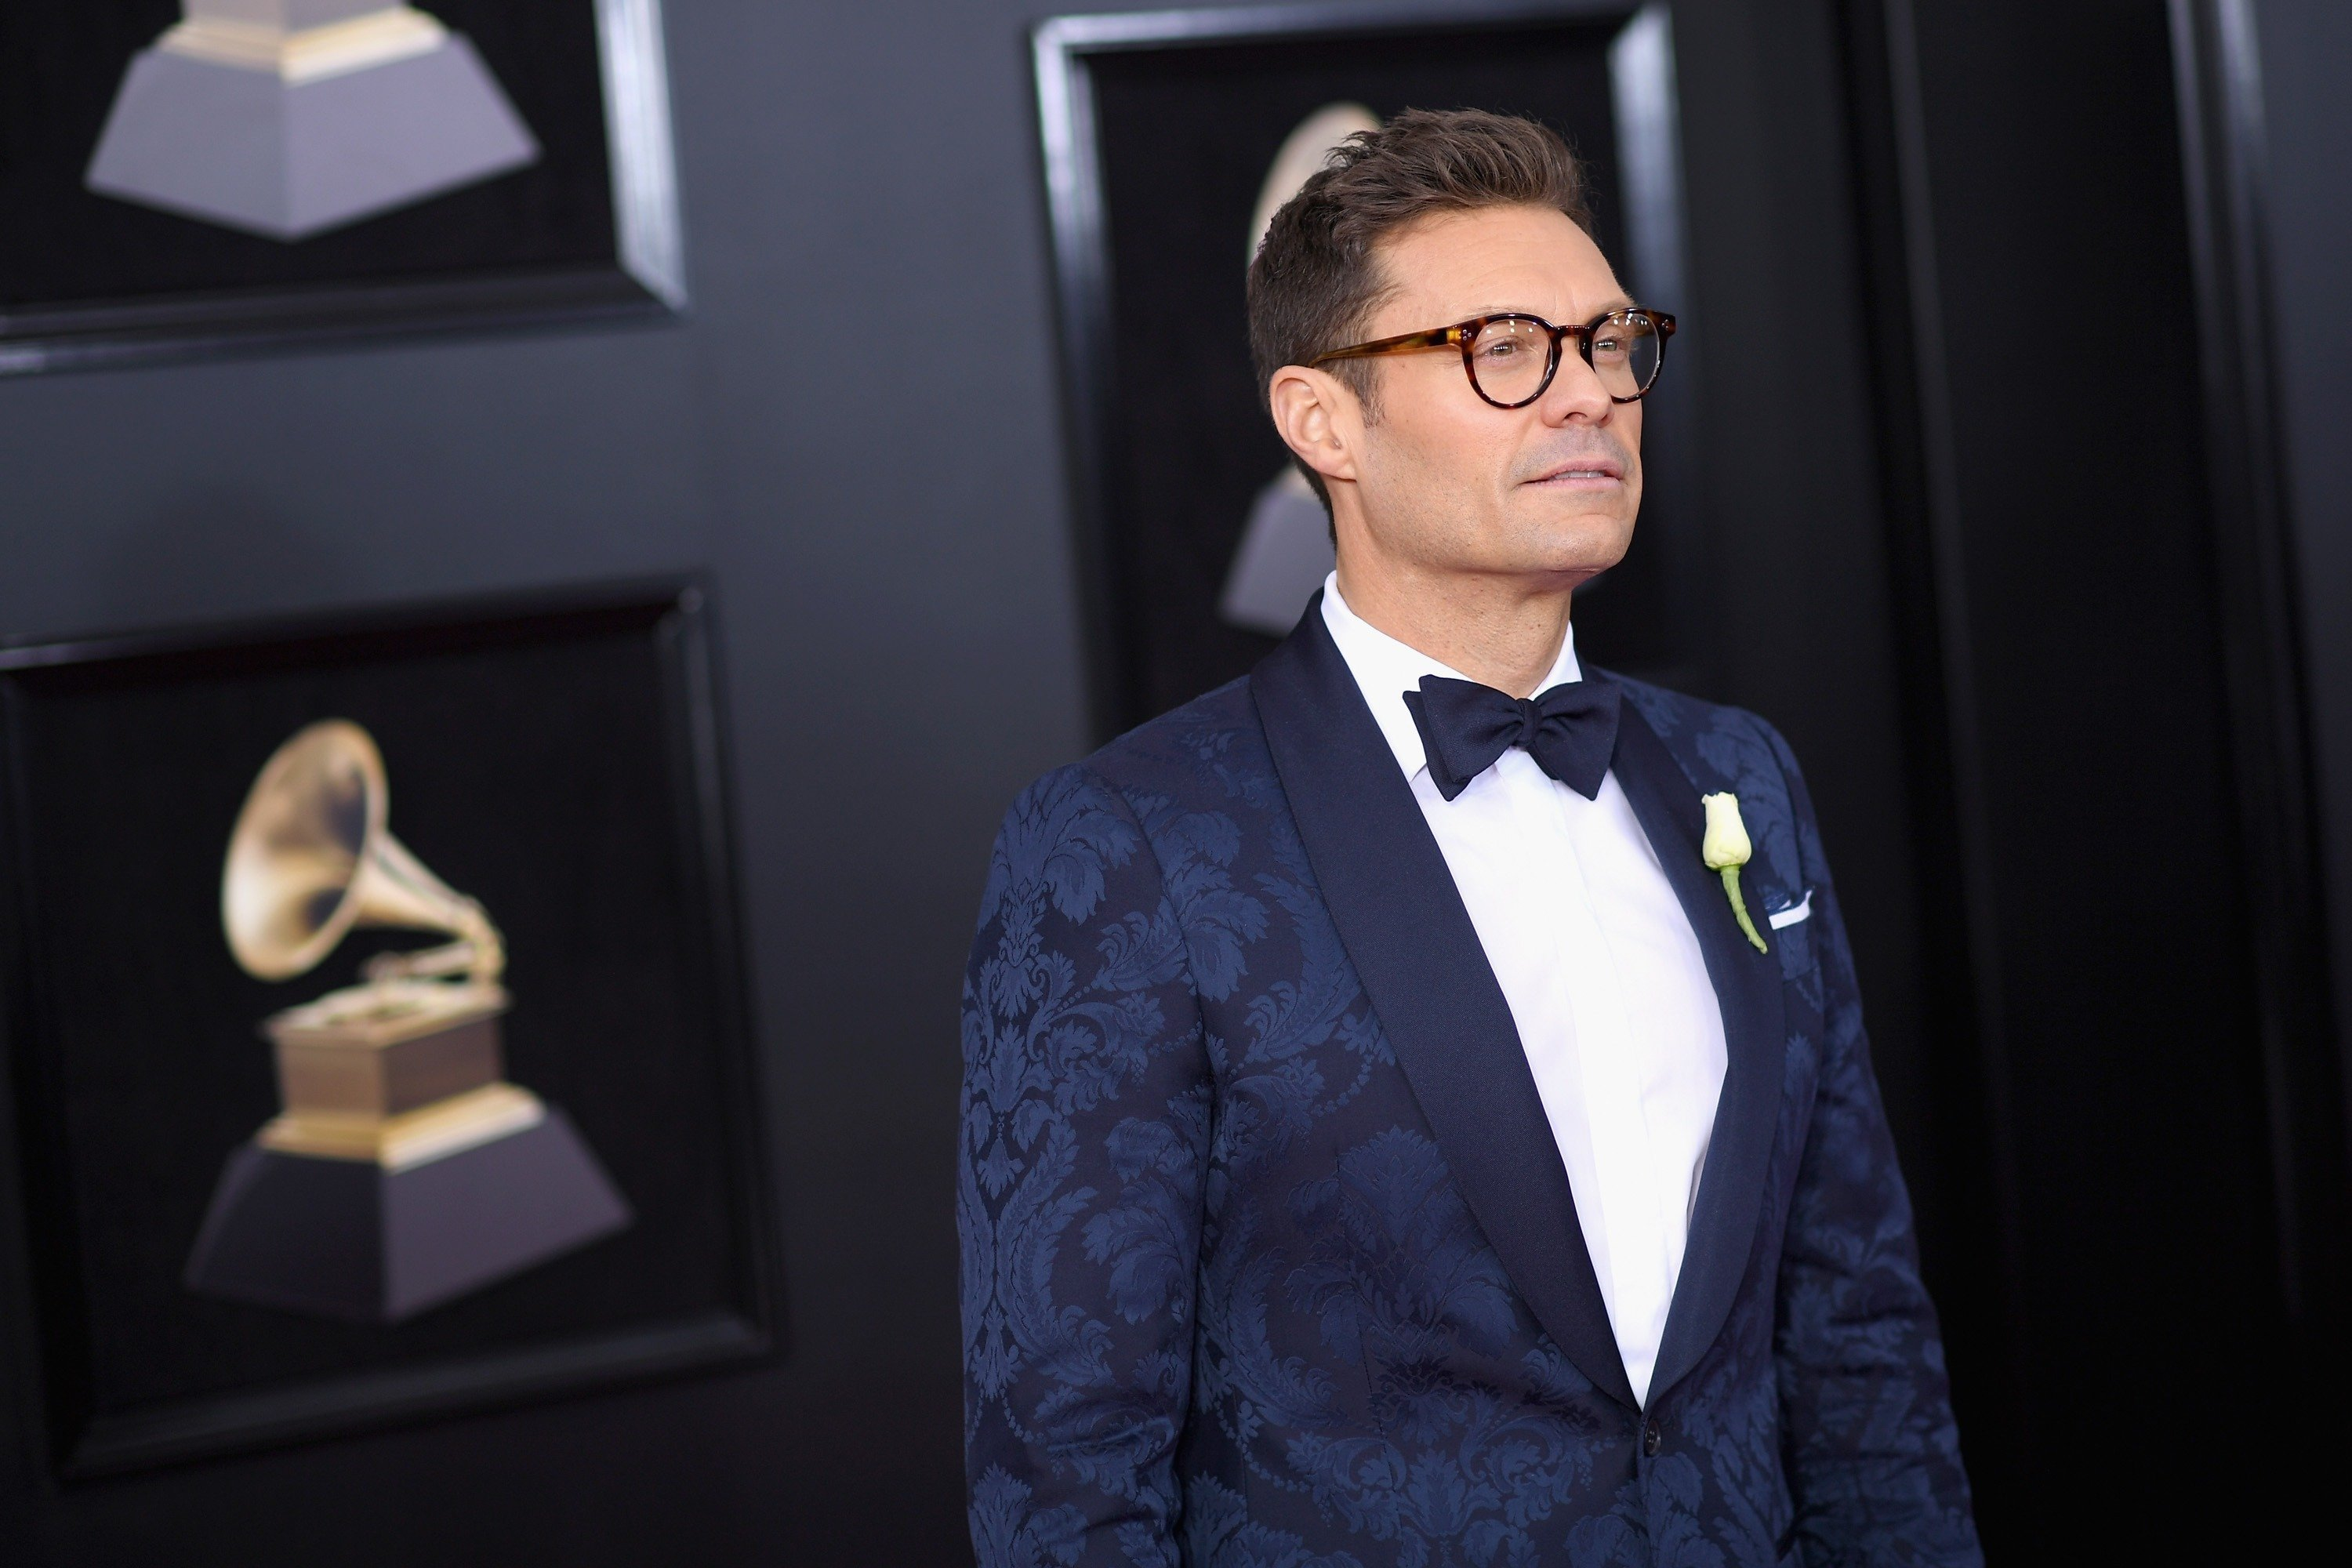 Days after an investigation found no evidence to support a claim of inappropriate behavior made against Ryan Seacrest by a former colleague, the long-time host has written about the experience in an op-ed.